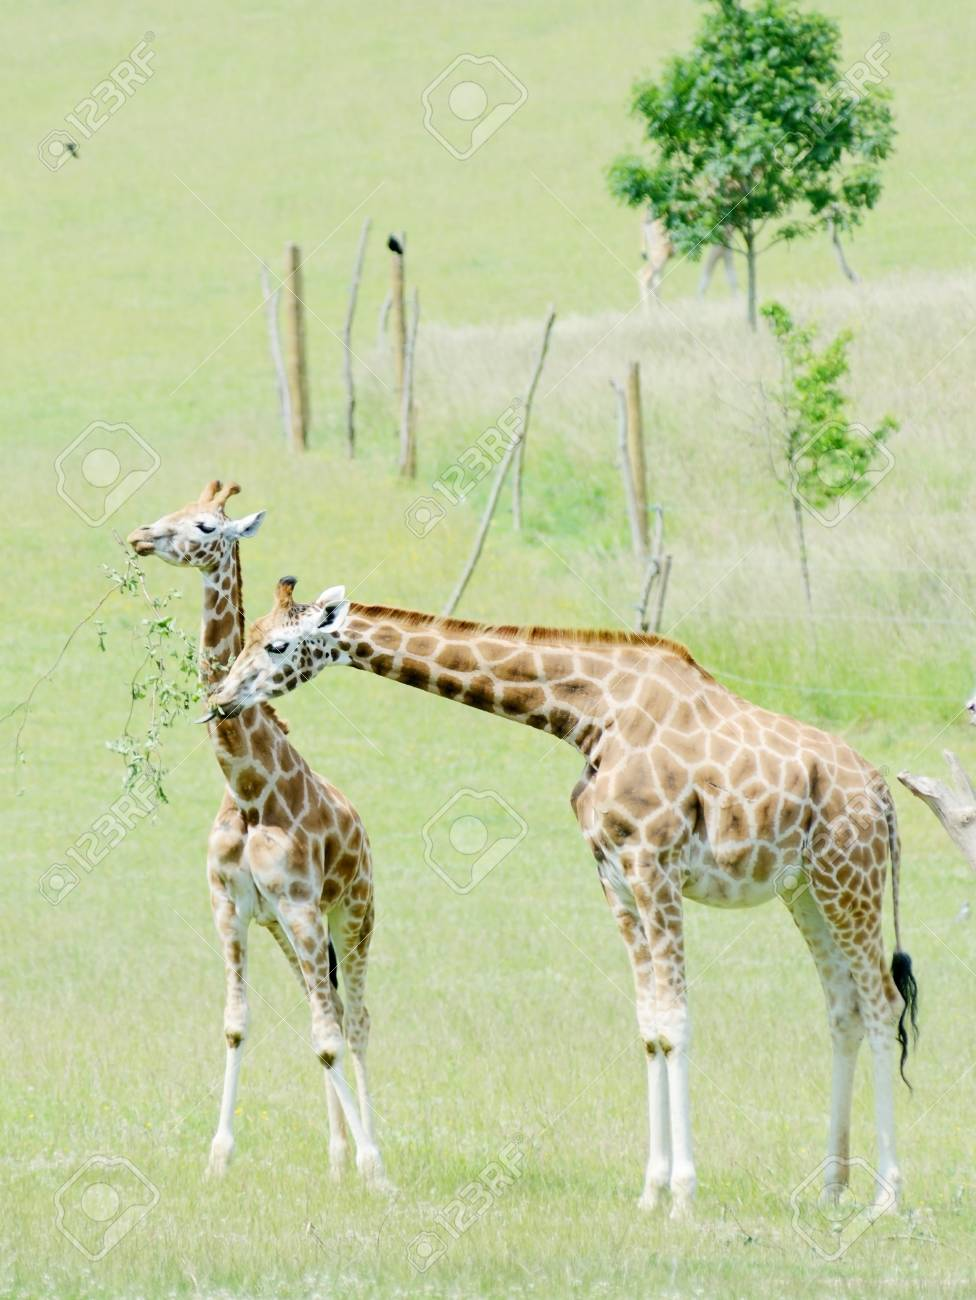 Giraffe Mother Feeding With Baby On Grassland Stock Photo Picture